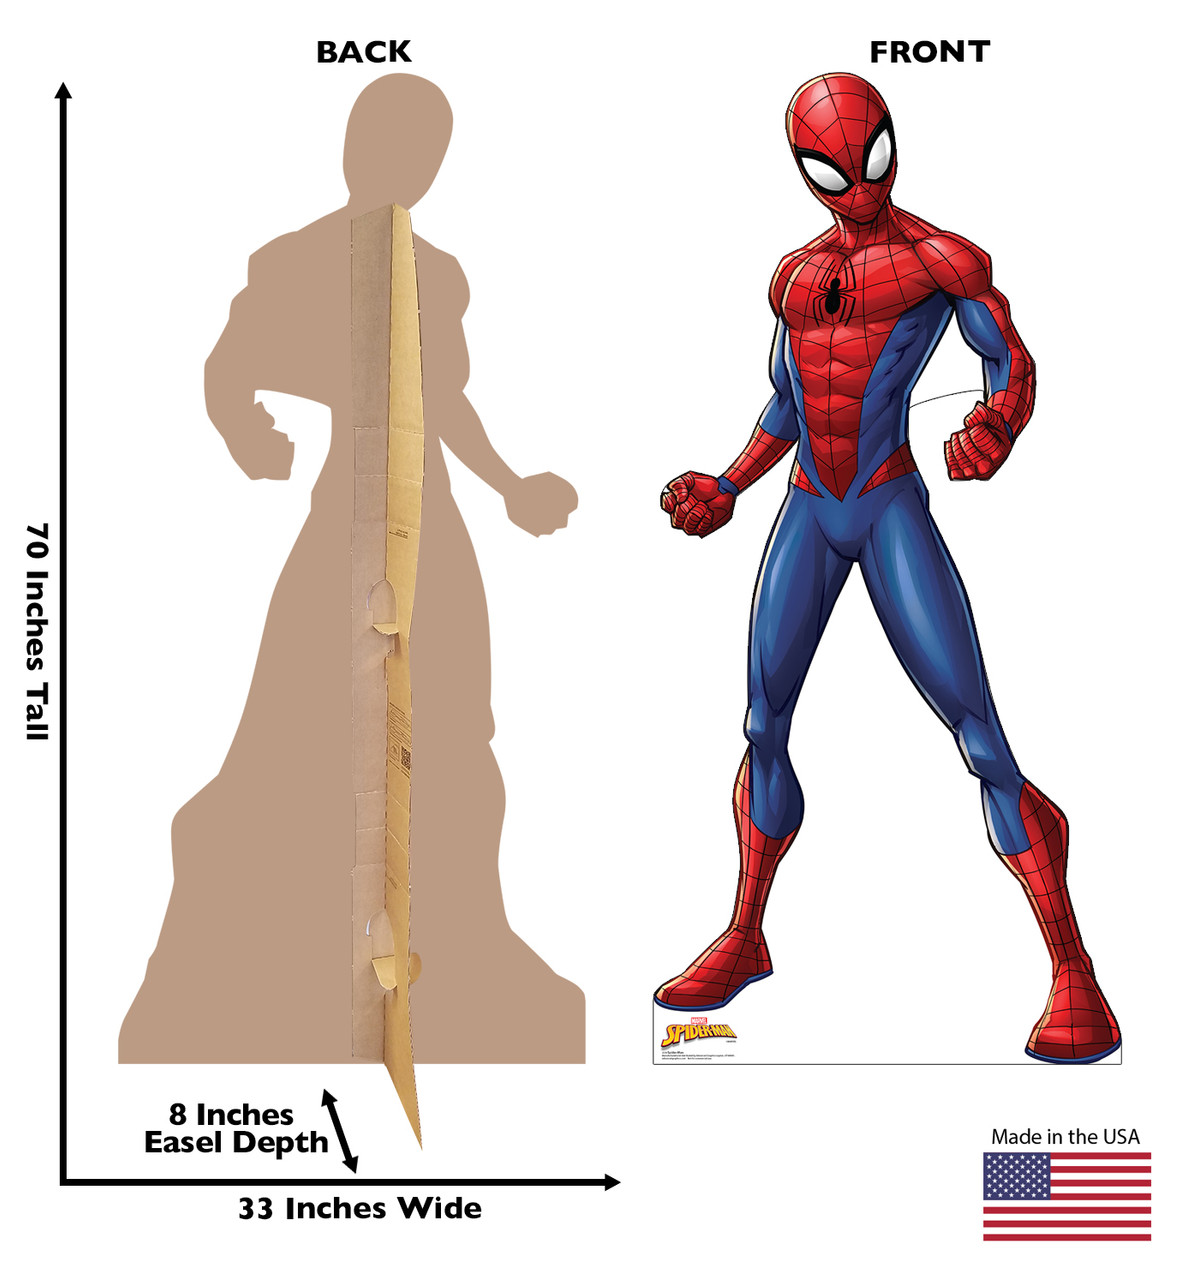 Life-size cardboard standee of Spider-Man from Marvel with front and back dimensions.